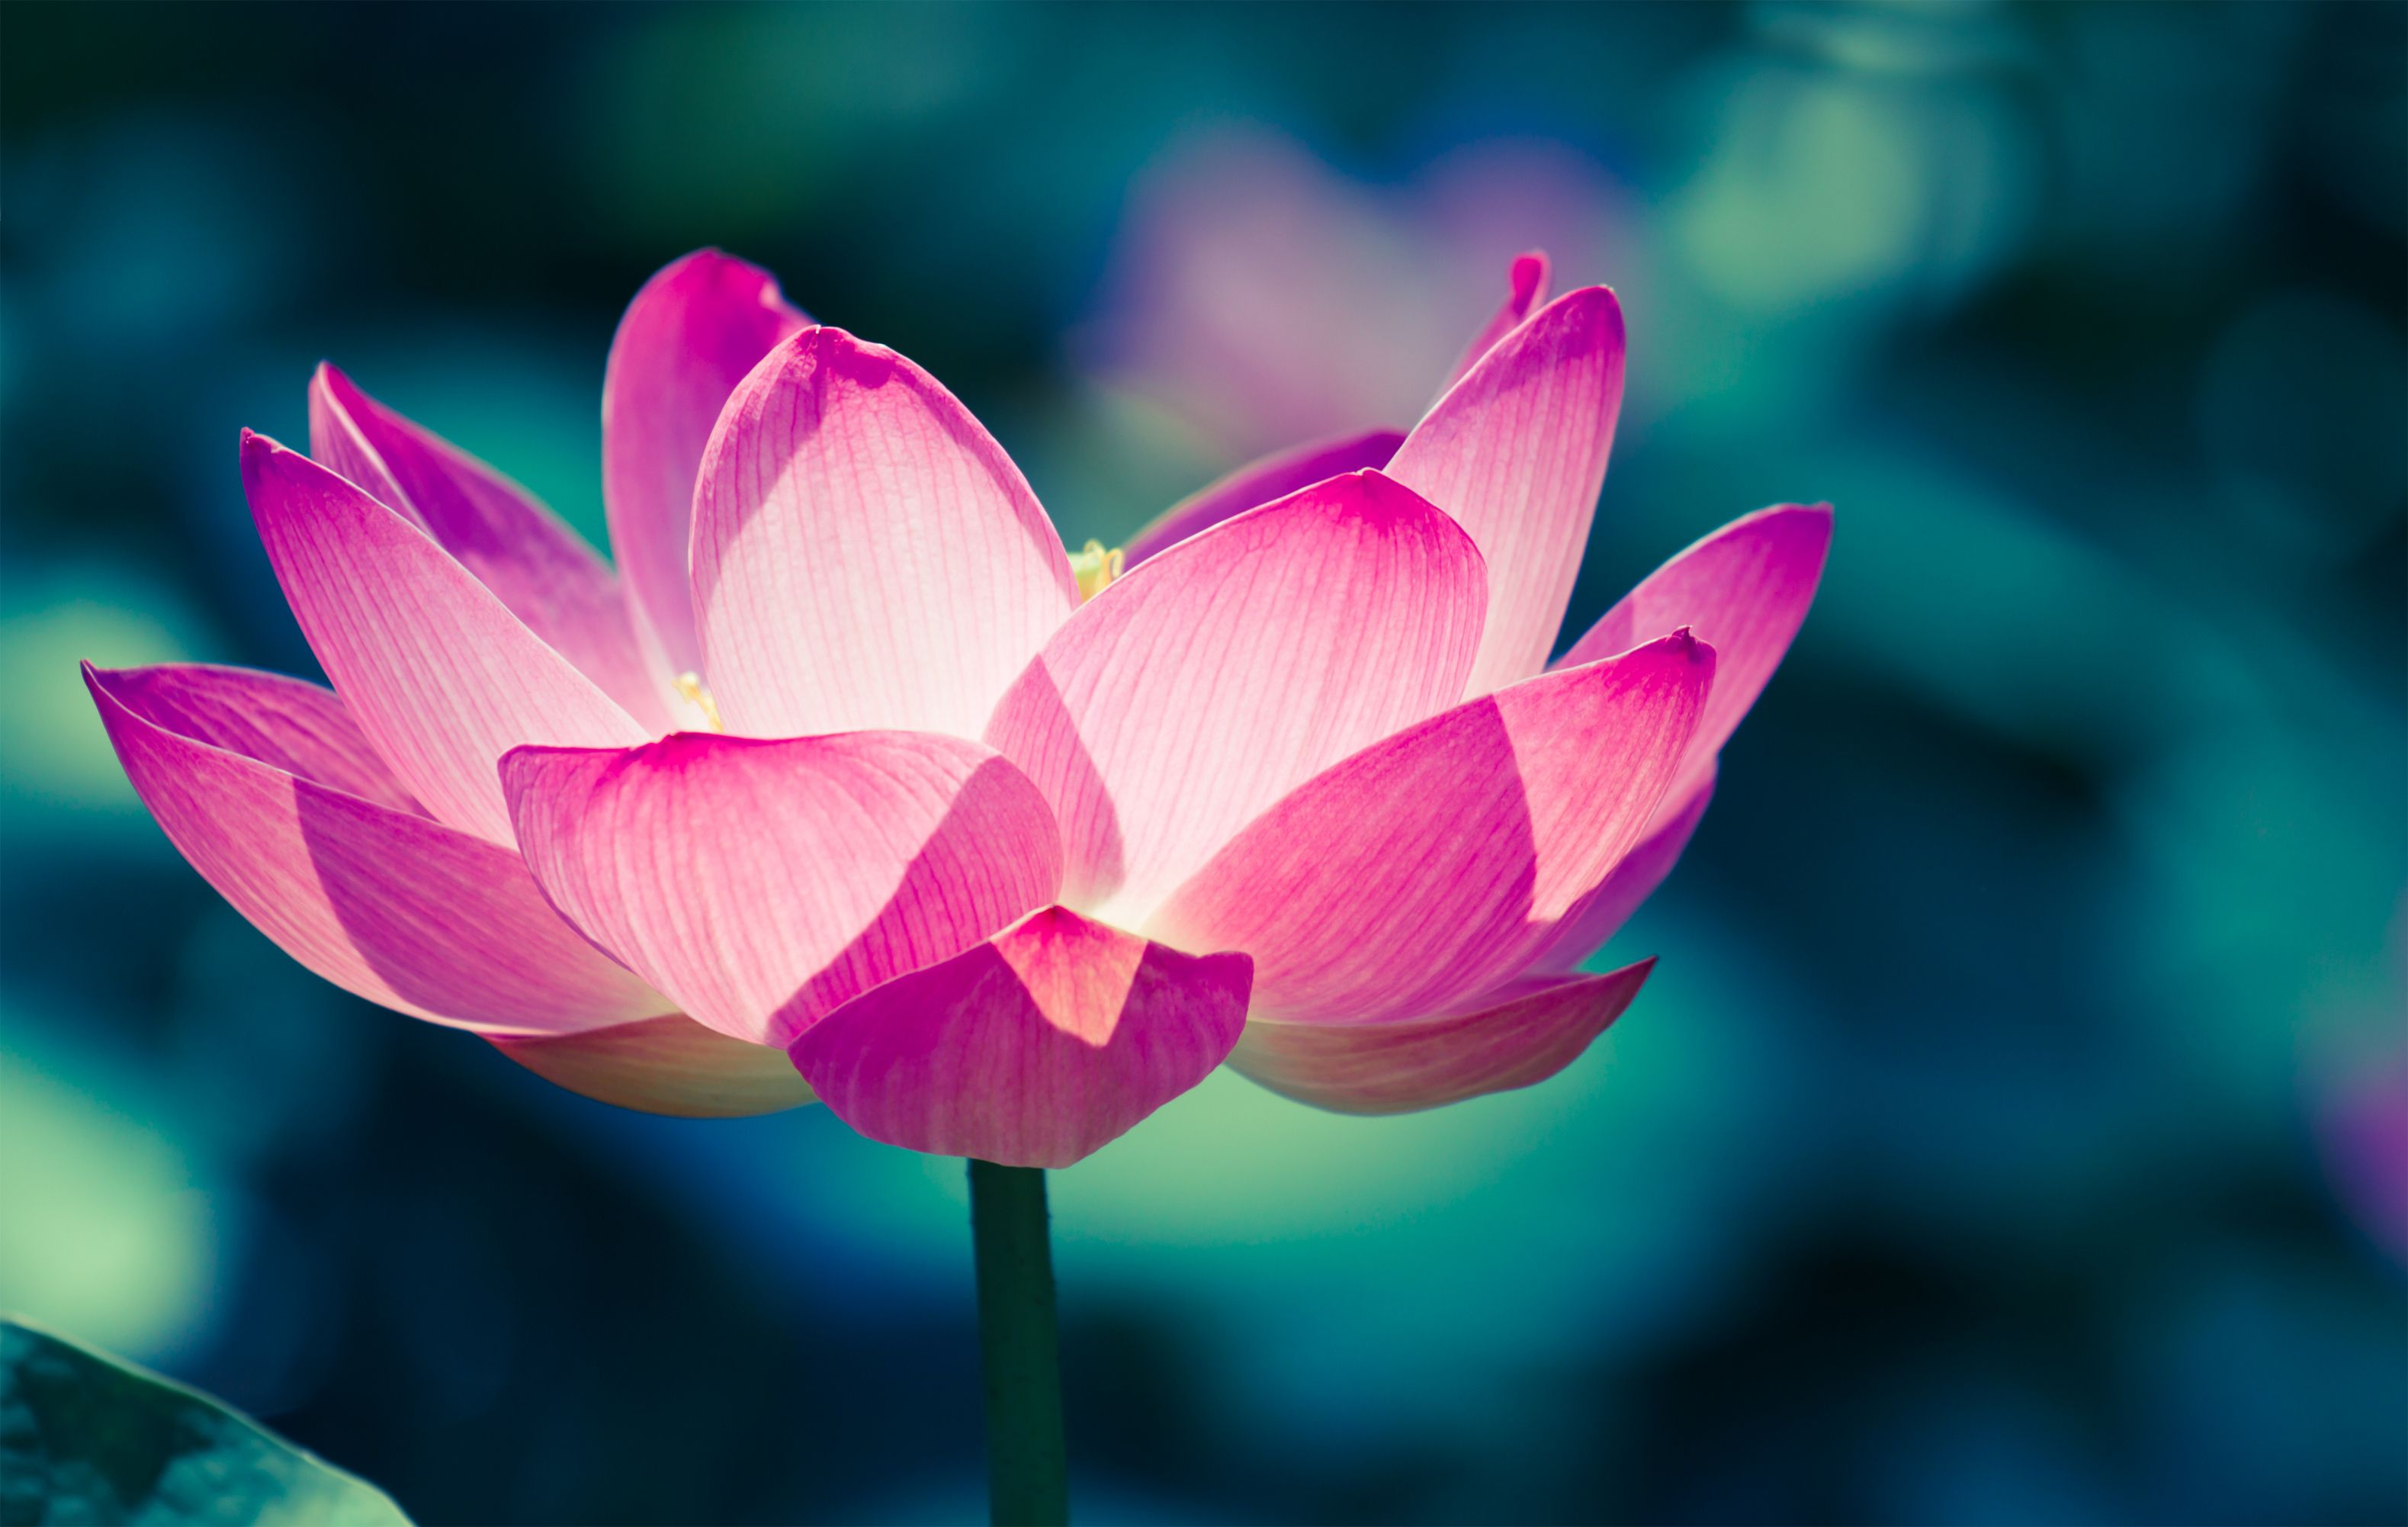 Lotus Flower Meaning What Is The Symbolism Behind The Lotus